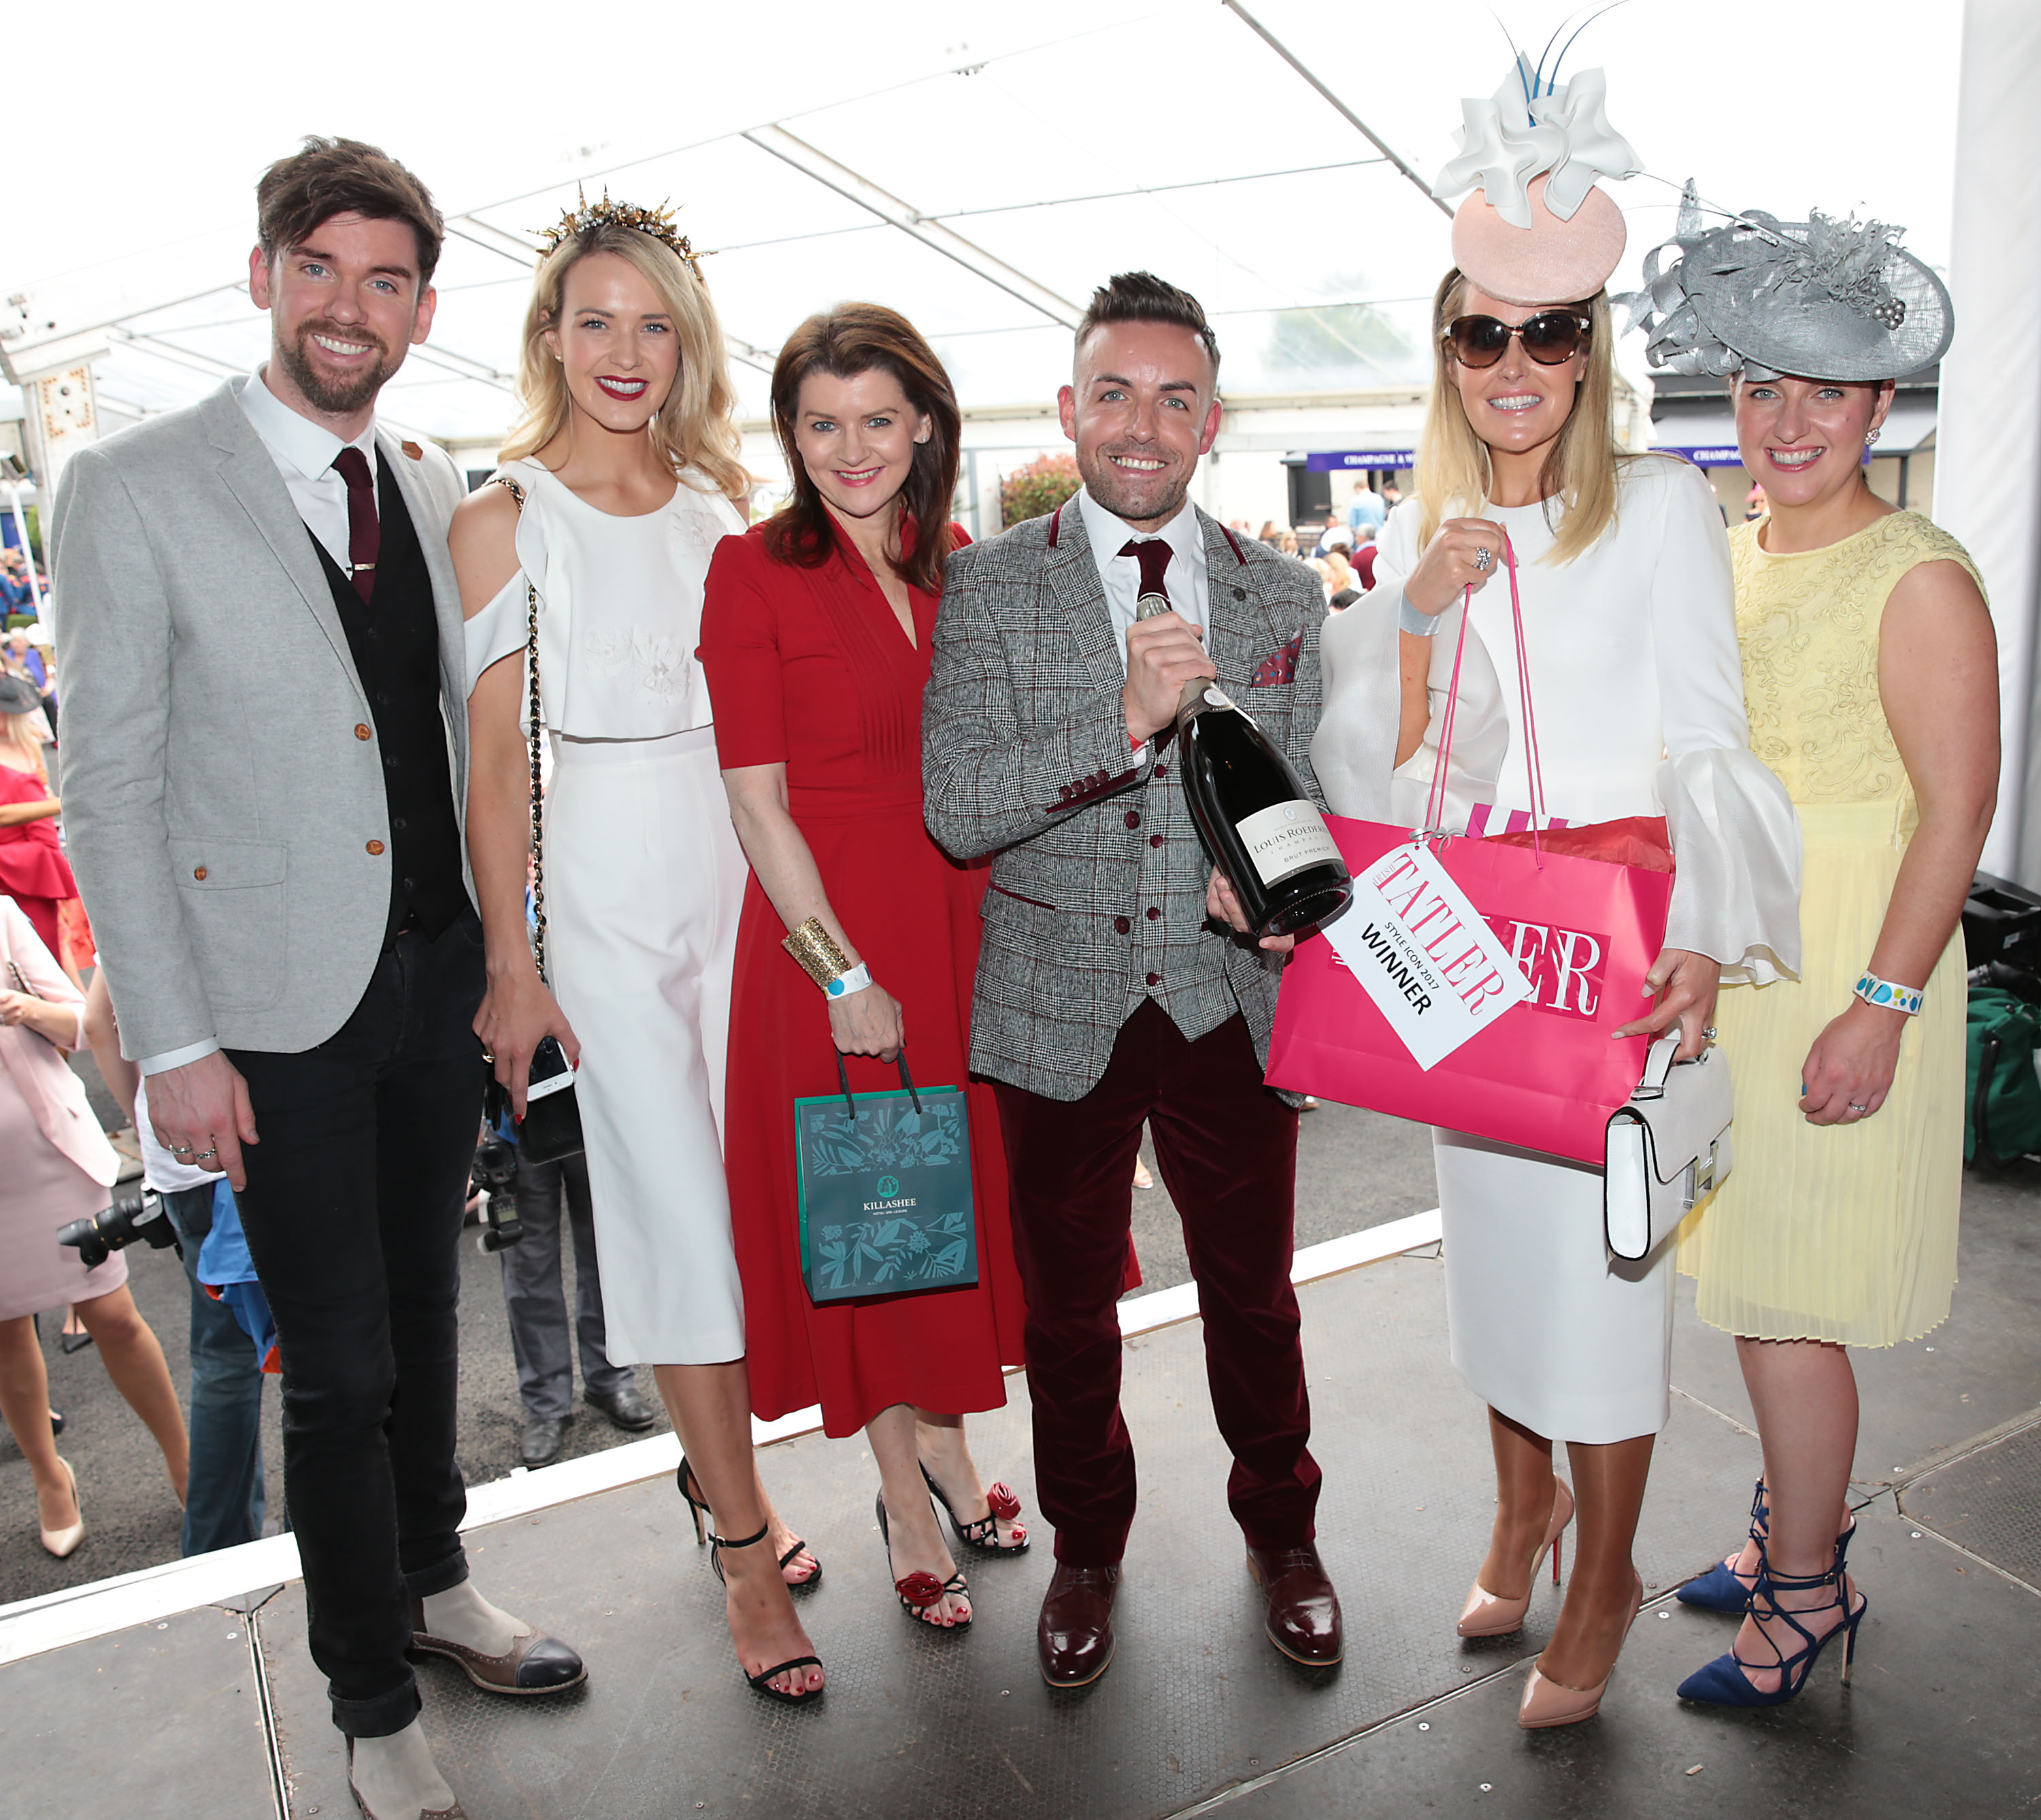 Eoghan McDermott -Judge , Aoibhin Garrihy -Judge , Ciara McElligott -Killashee Hotel,Stuart Montgomery and Jane Mulrooney -  Style Icon 2017  Winners  and Shauna O Halloran -Editor of Irish Tatler at the Killashee Irish Tatler Style Icon competition at The 1000 Guineas at the Curragh Racecourse in Kildare Picture Brian McEvoy No repro fee